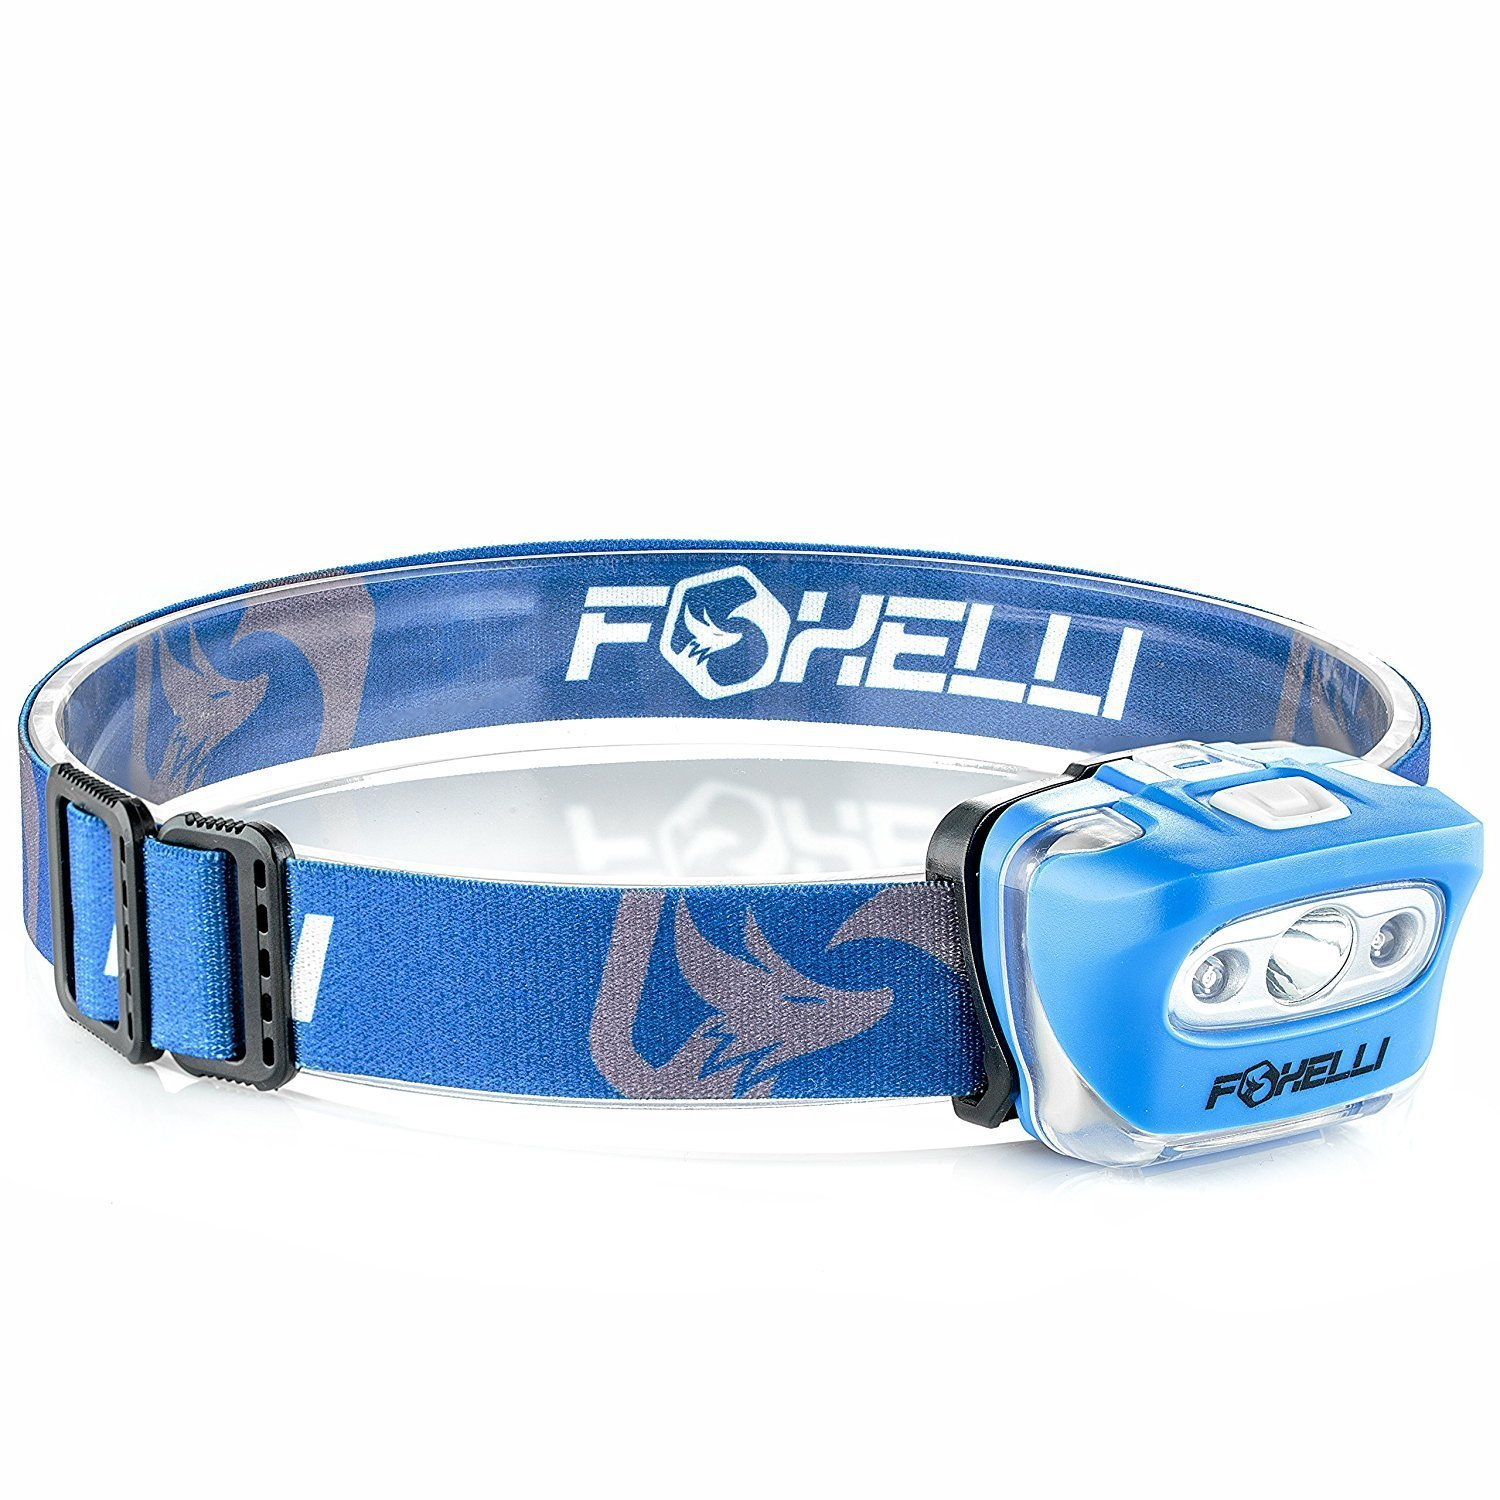 Foxelli Headlamp Flashlight - 165 Lumen Bright White Cree Led